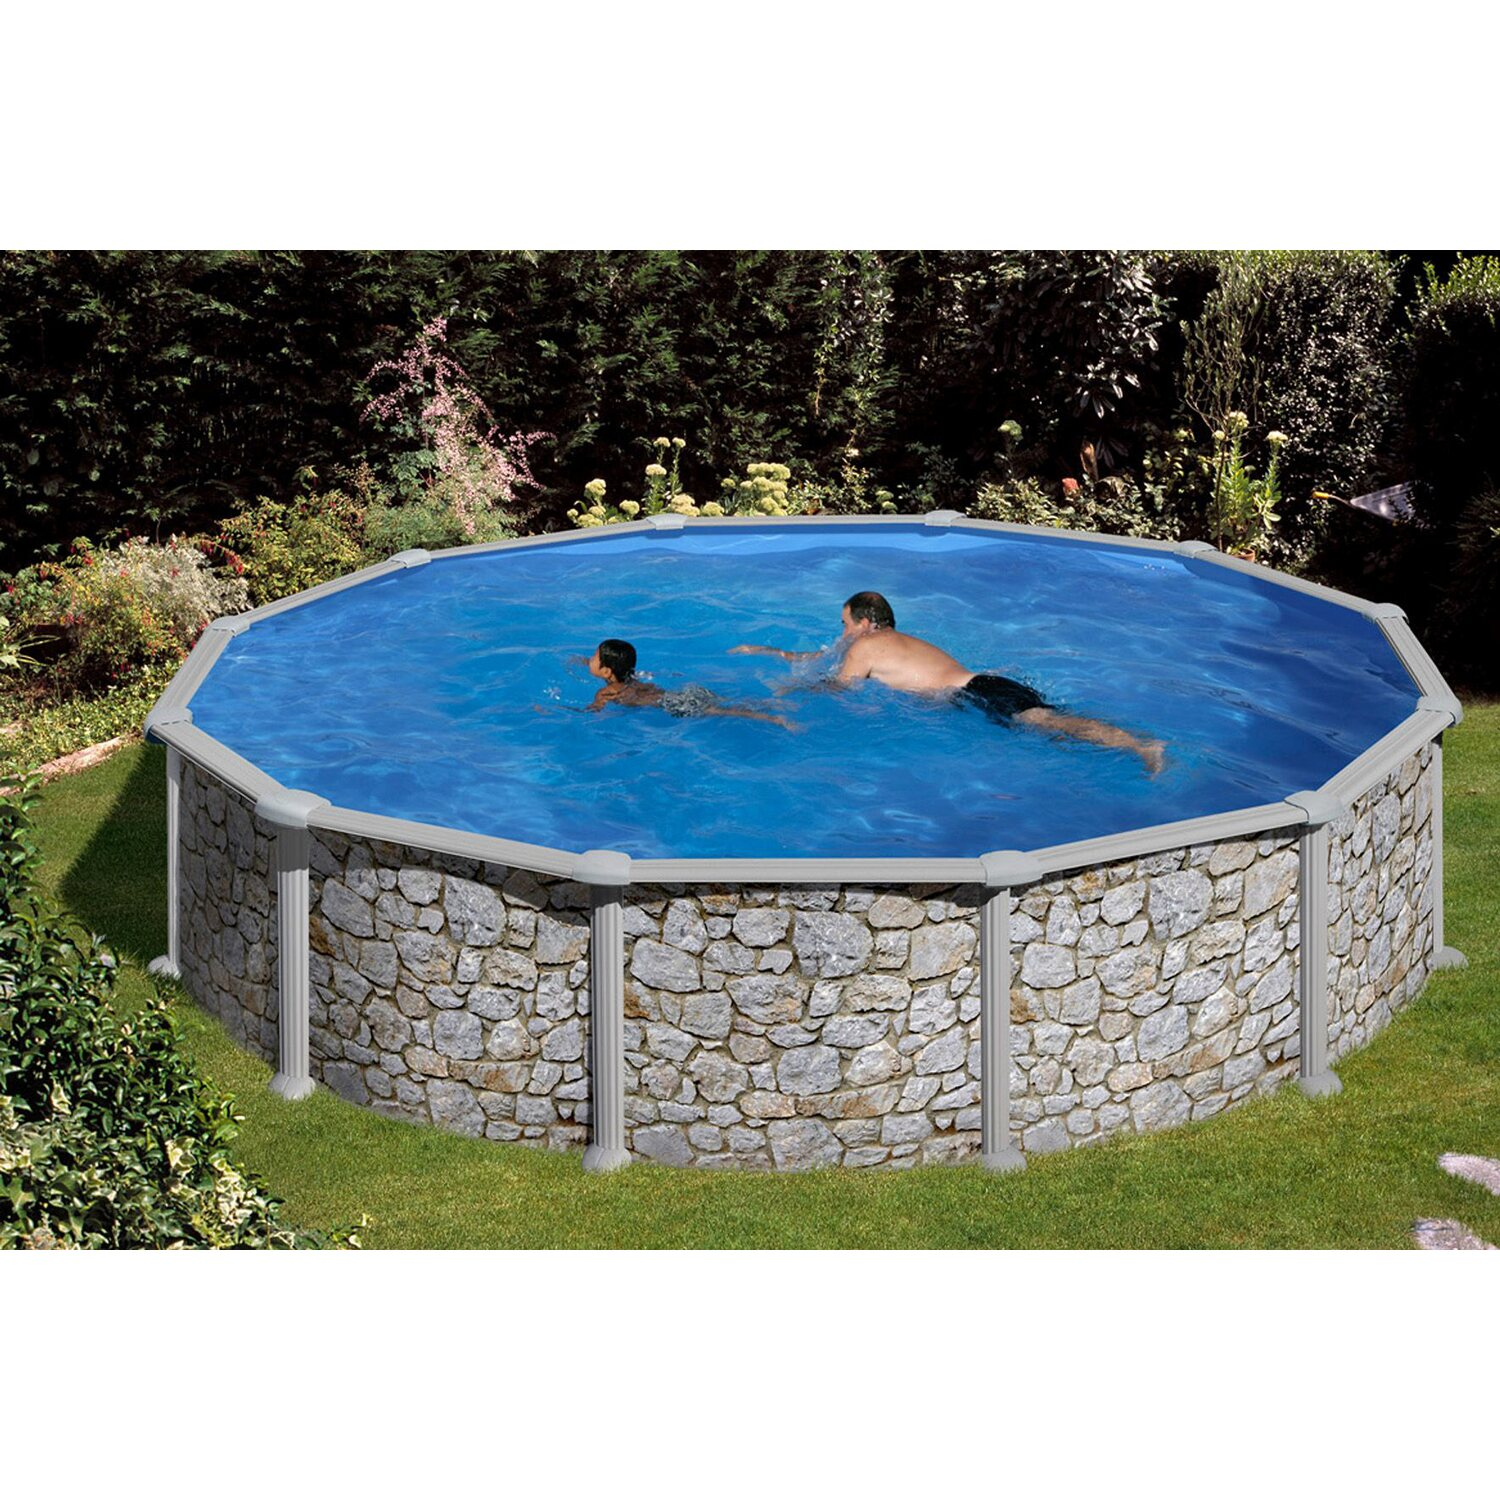 Summer fun stahlwand pool set verona 350 cm x 120 cm for Obi skimmer